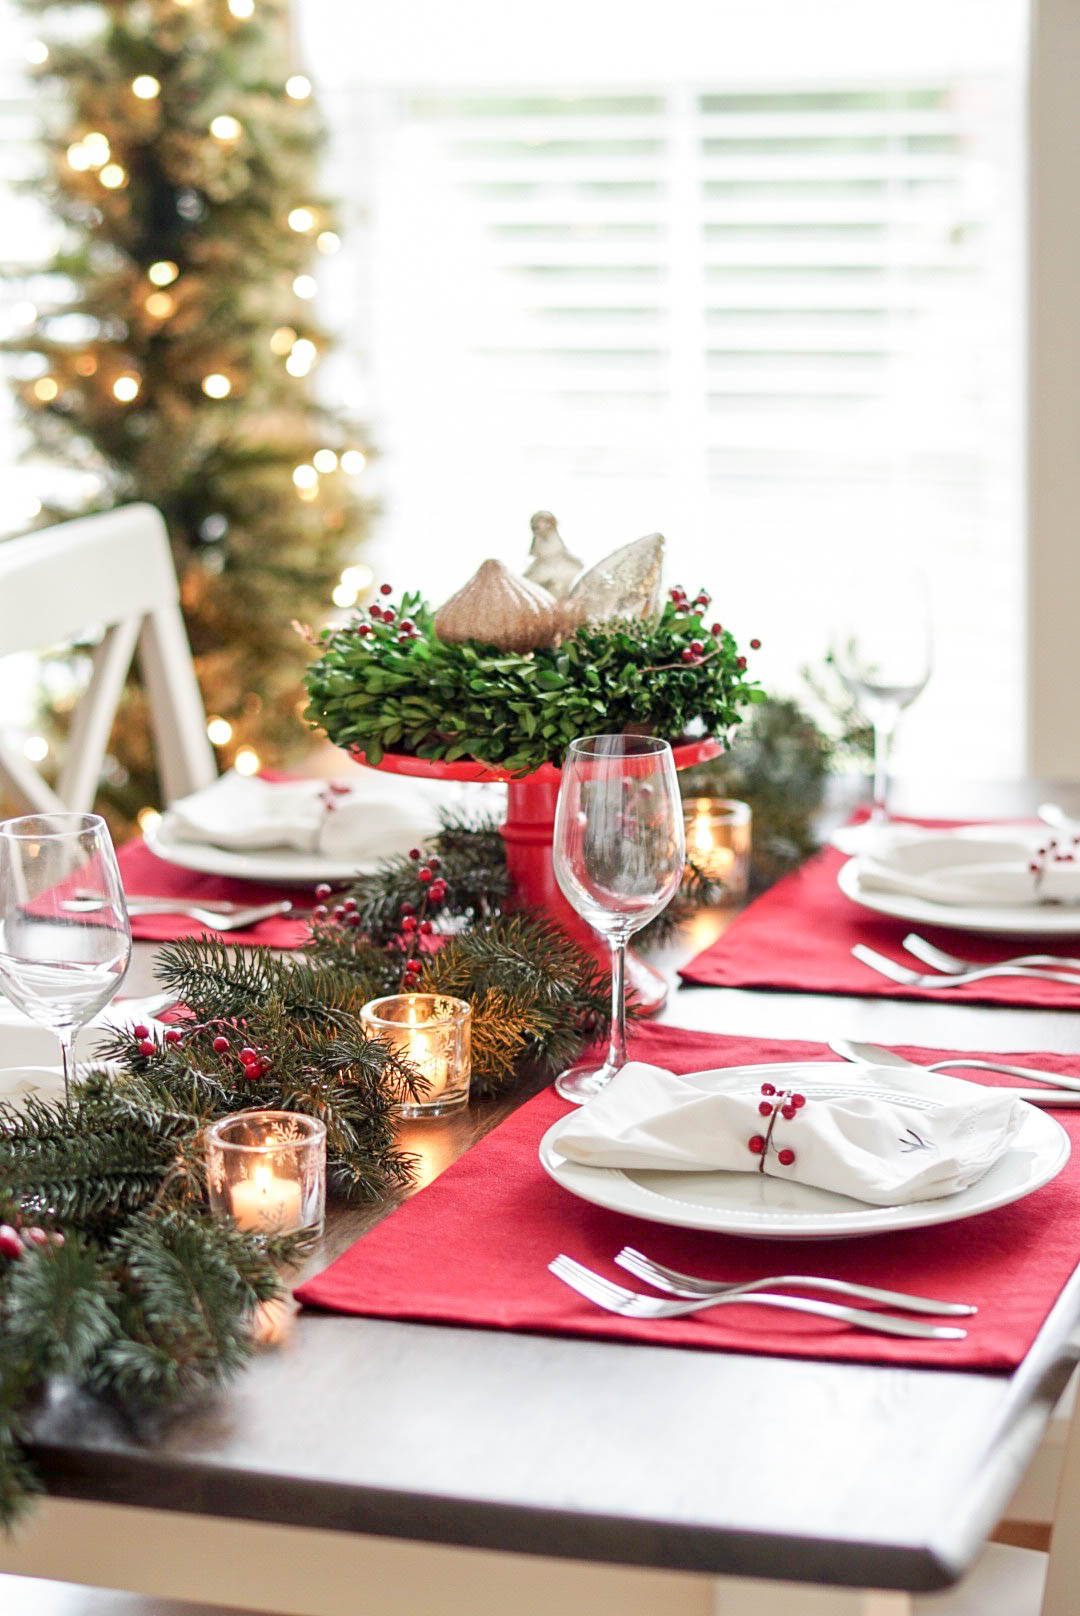 Diy Holiday Tablescape Project Ideas How To Apply Heat Transfer